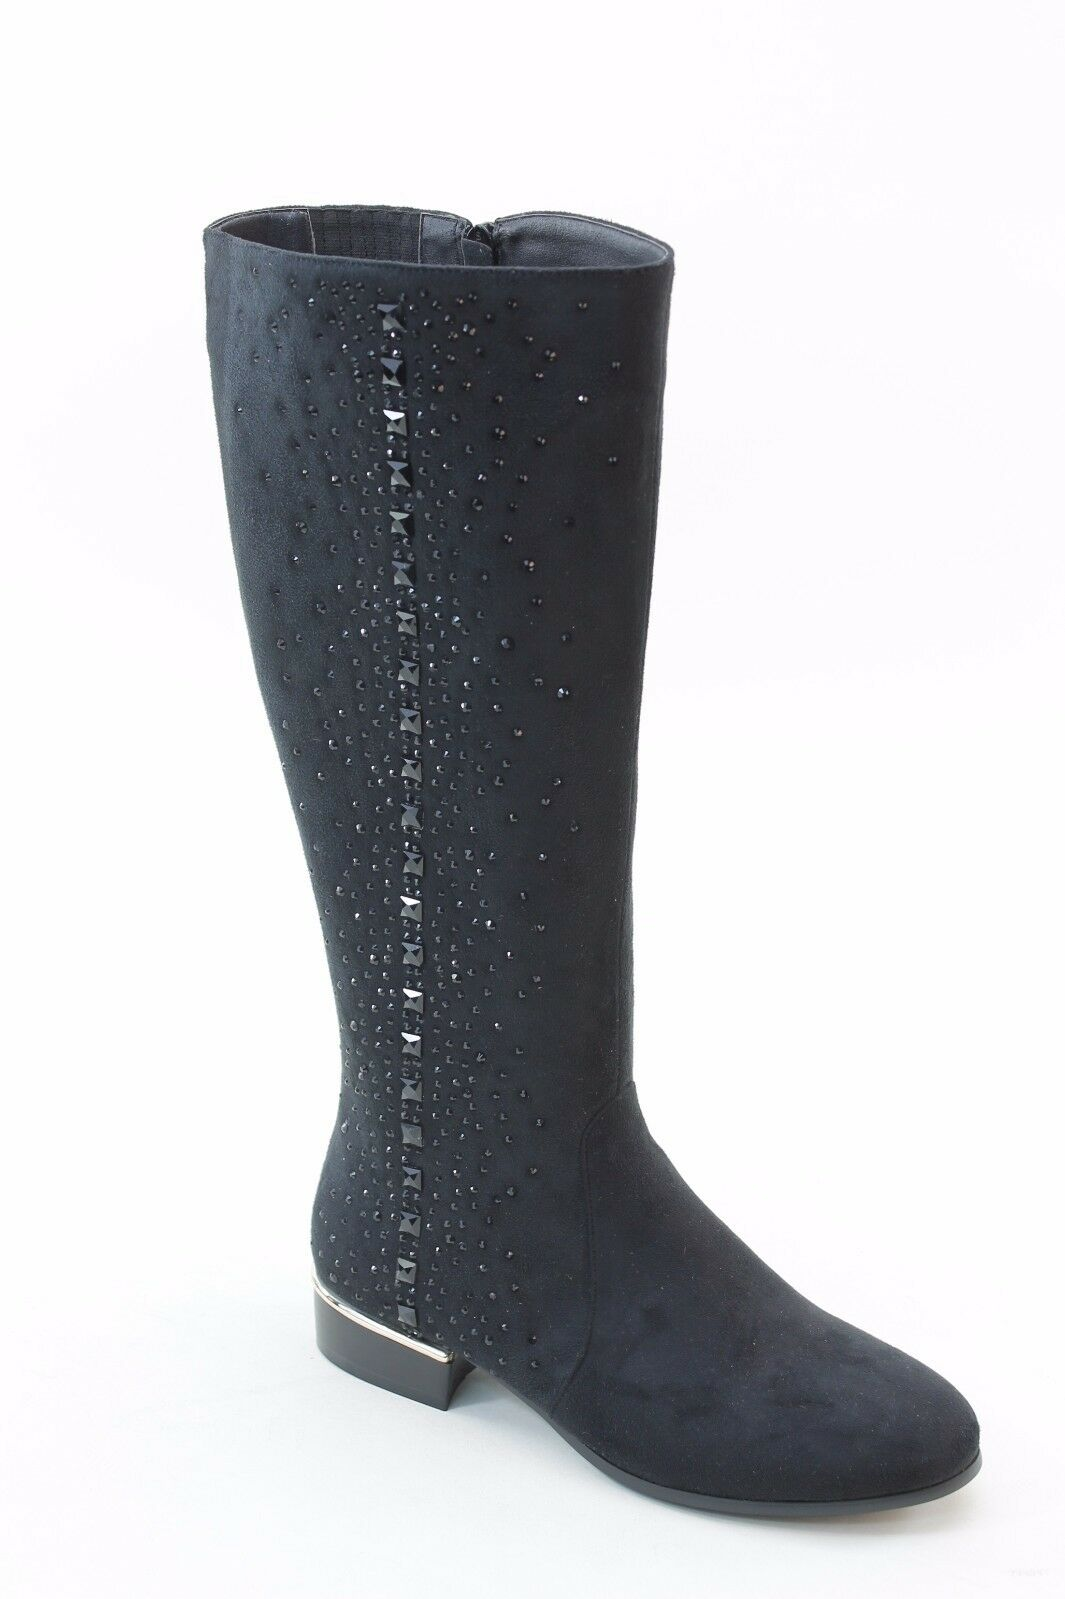 NEU WOMEN PARTY DRESSY  BLACK COMFORT LOW HEEL ZIPPER BOOTS